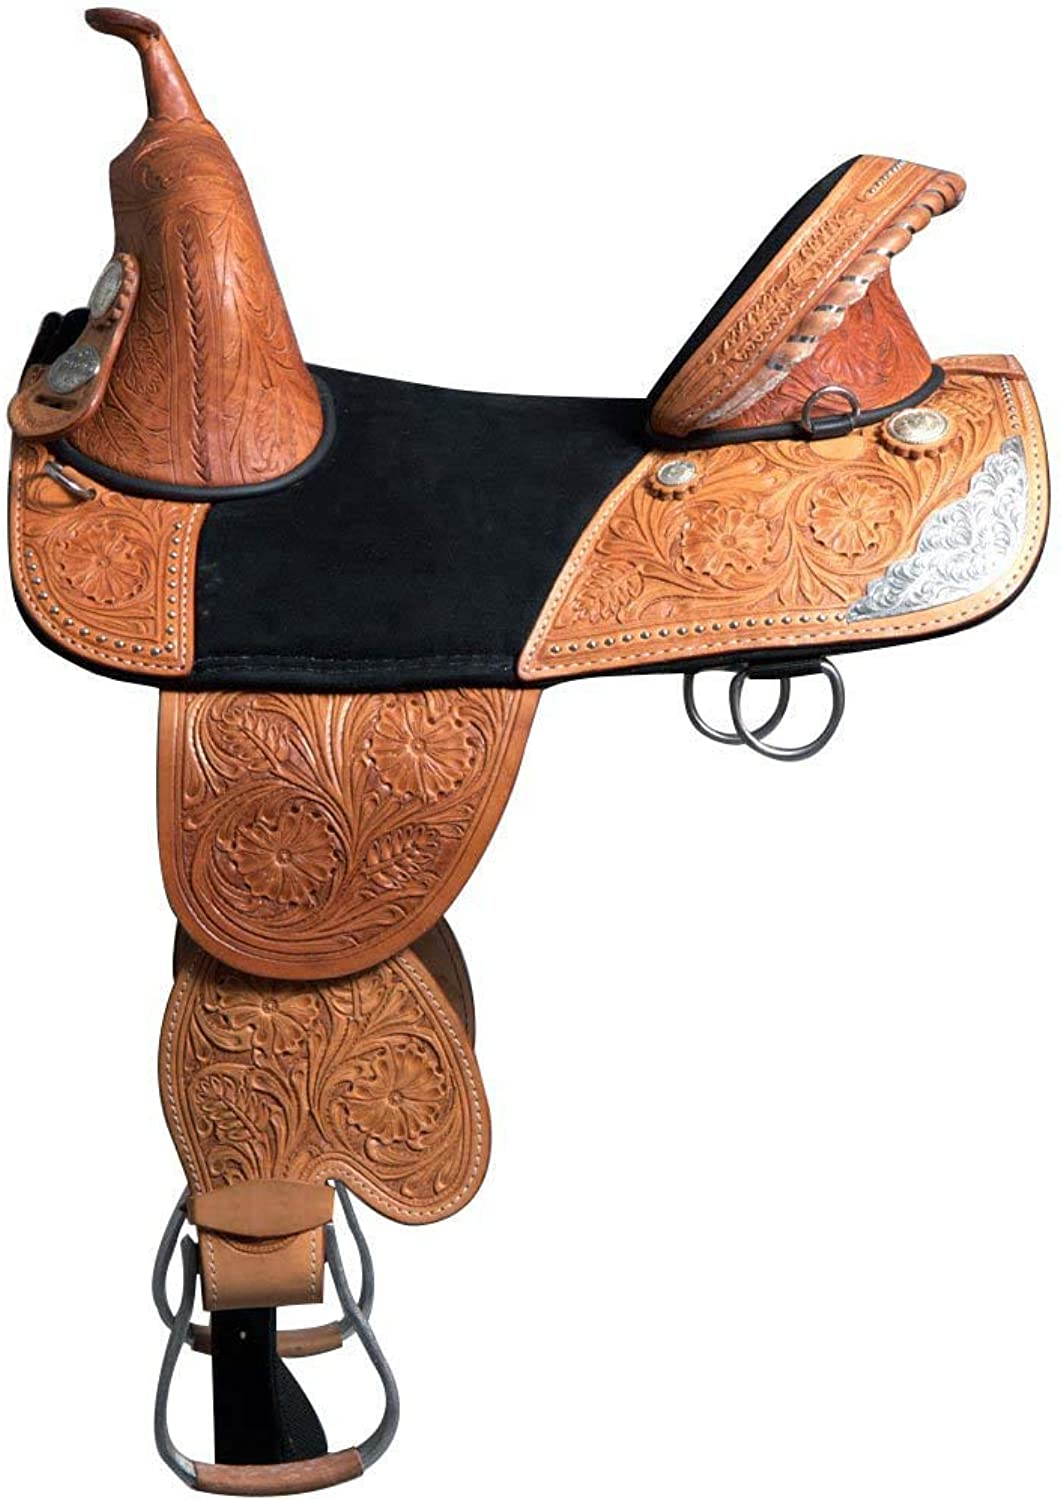 ME Enterprises Adult Western Pleasure Trail Barrel Racing Premium Leather TREELESS Horse Saddle Tack Size 14  to 18  Inches Seat Available (17  Inches Seat, TREELESS_01)